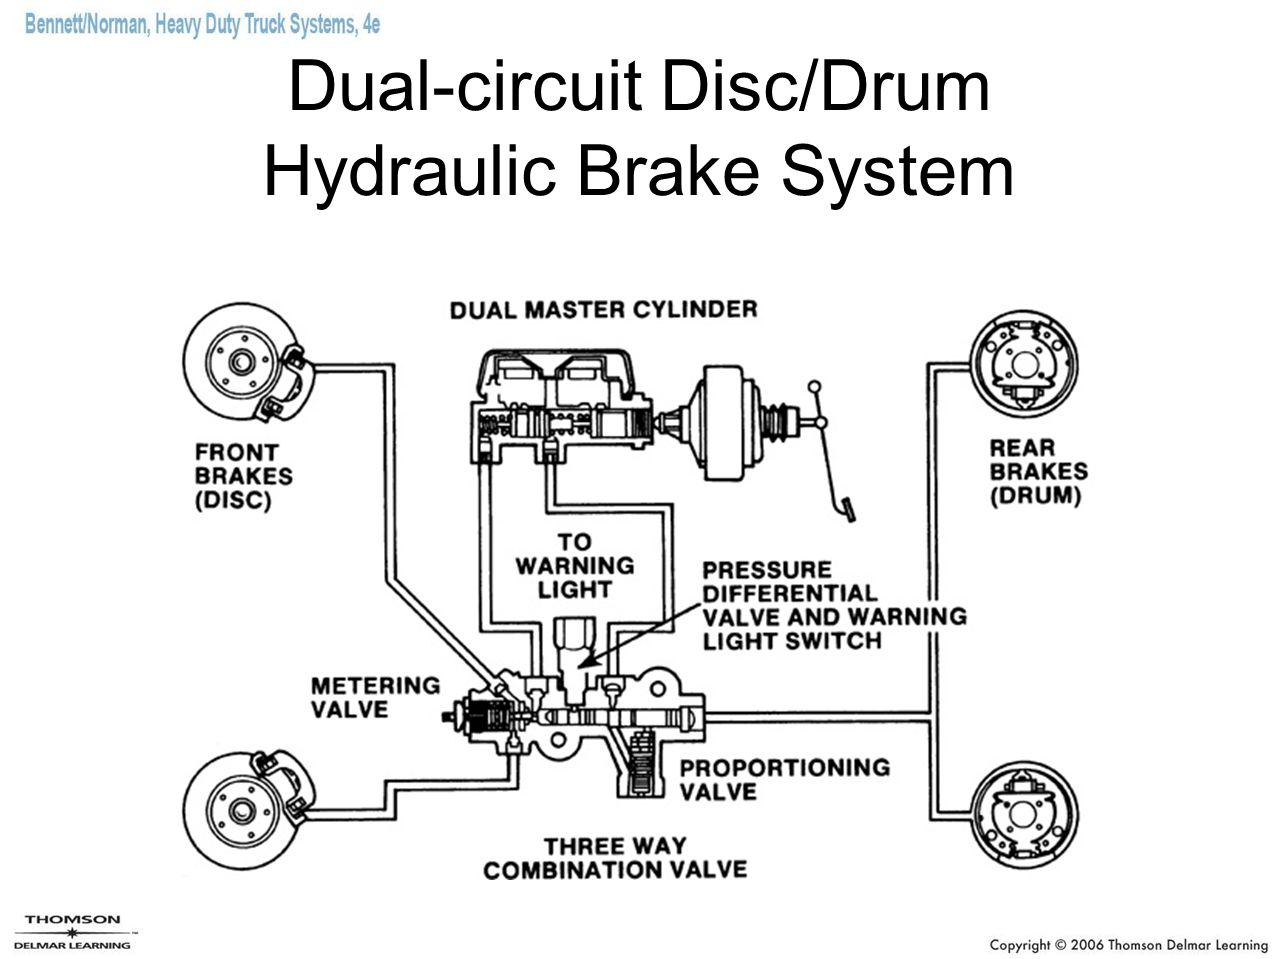 Ford 5 4 Dual Air Diagram Wiring Diagrams For Dummies 2005 Engine Hydraulic Brakes And Over Brake Systems F 150